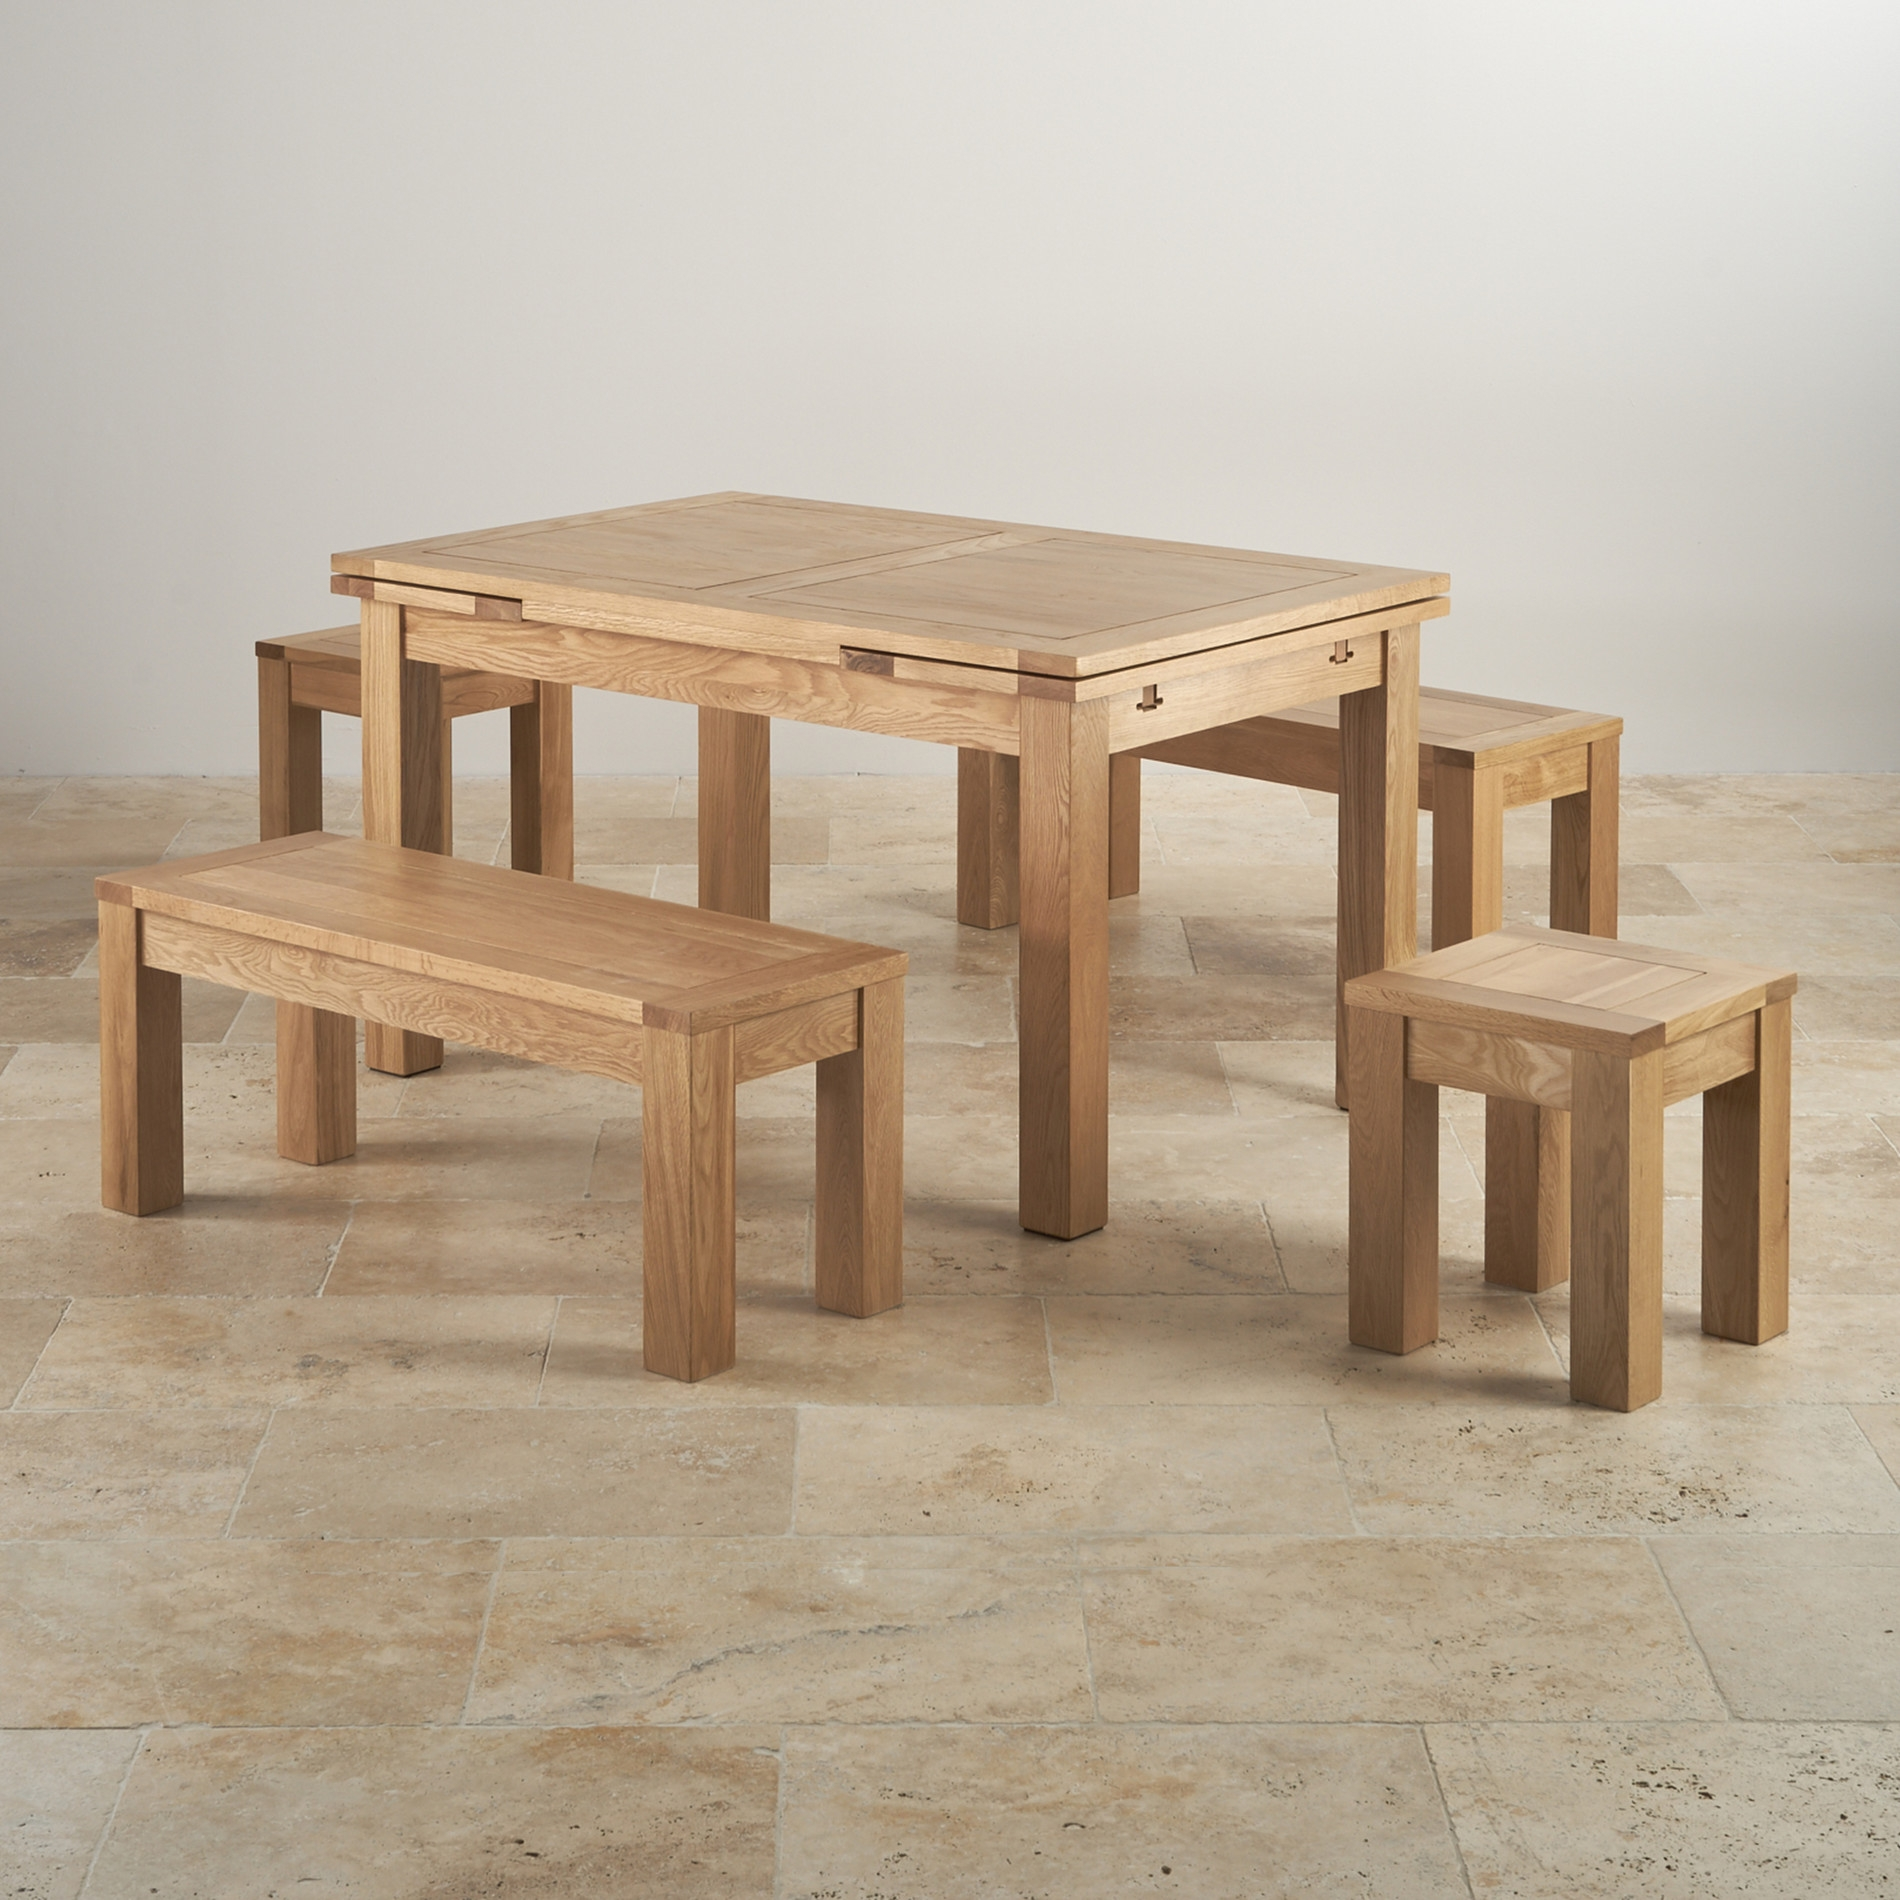 50 breathtaking picture of solid oak dining tables benches stools